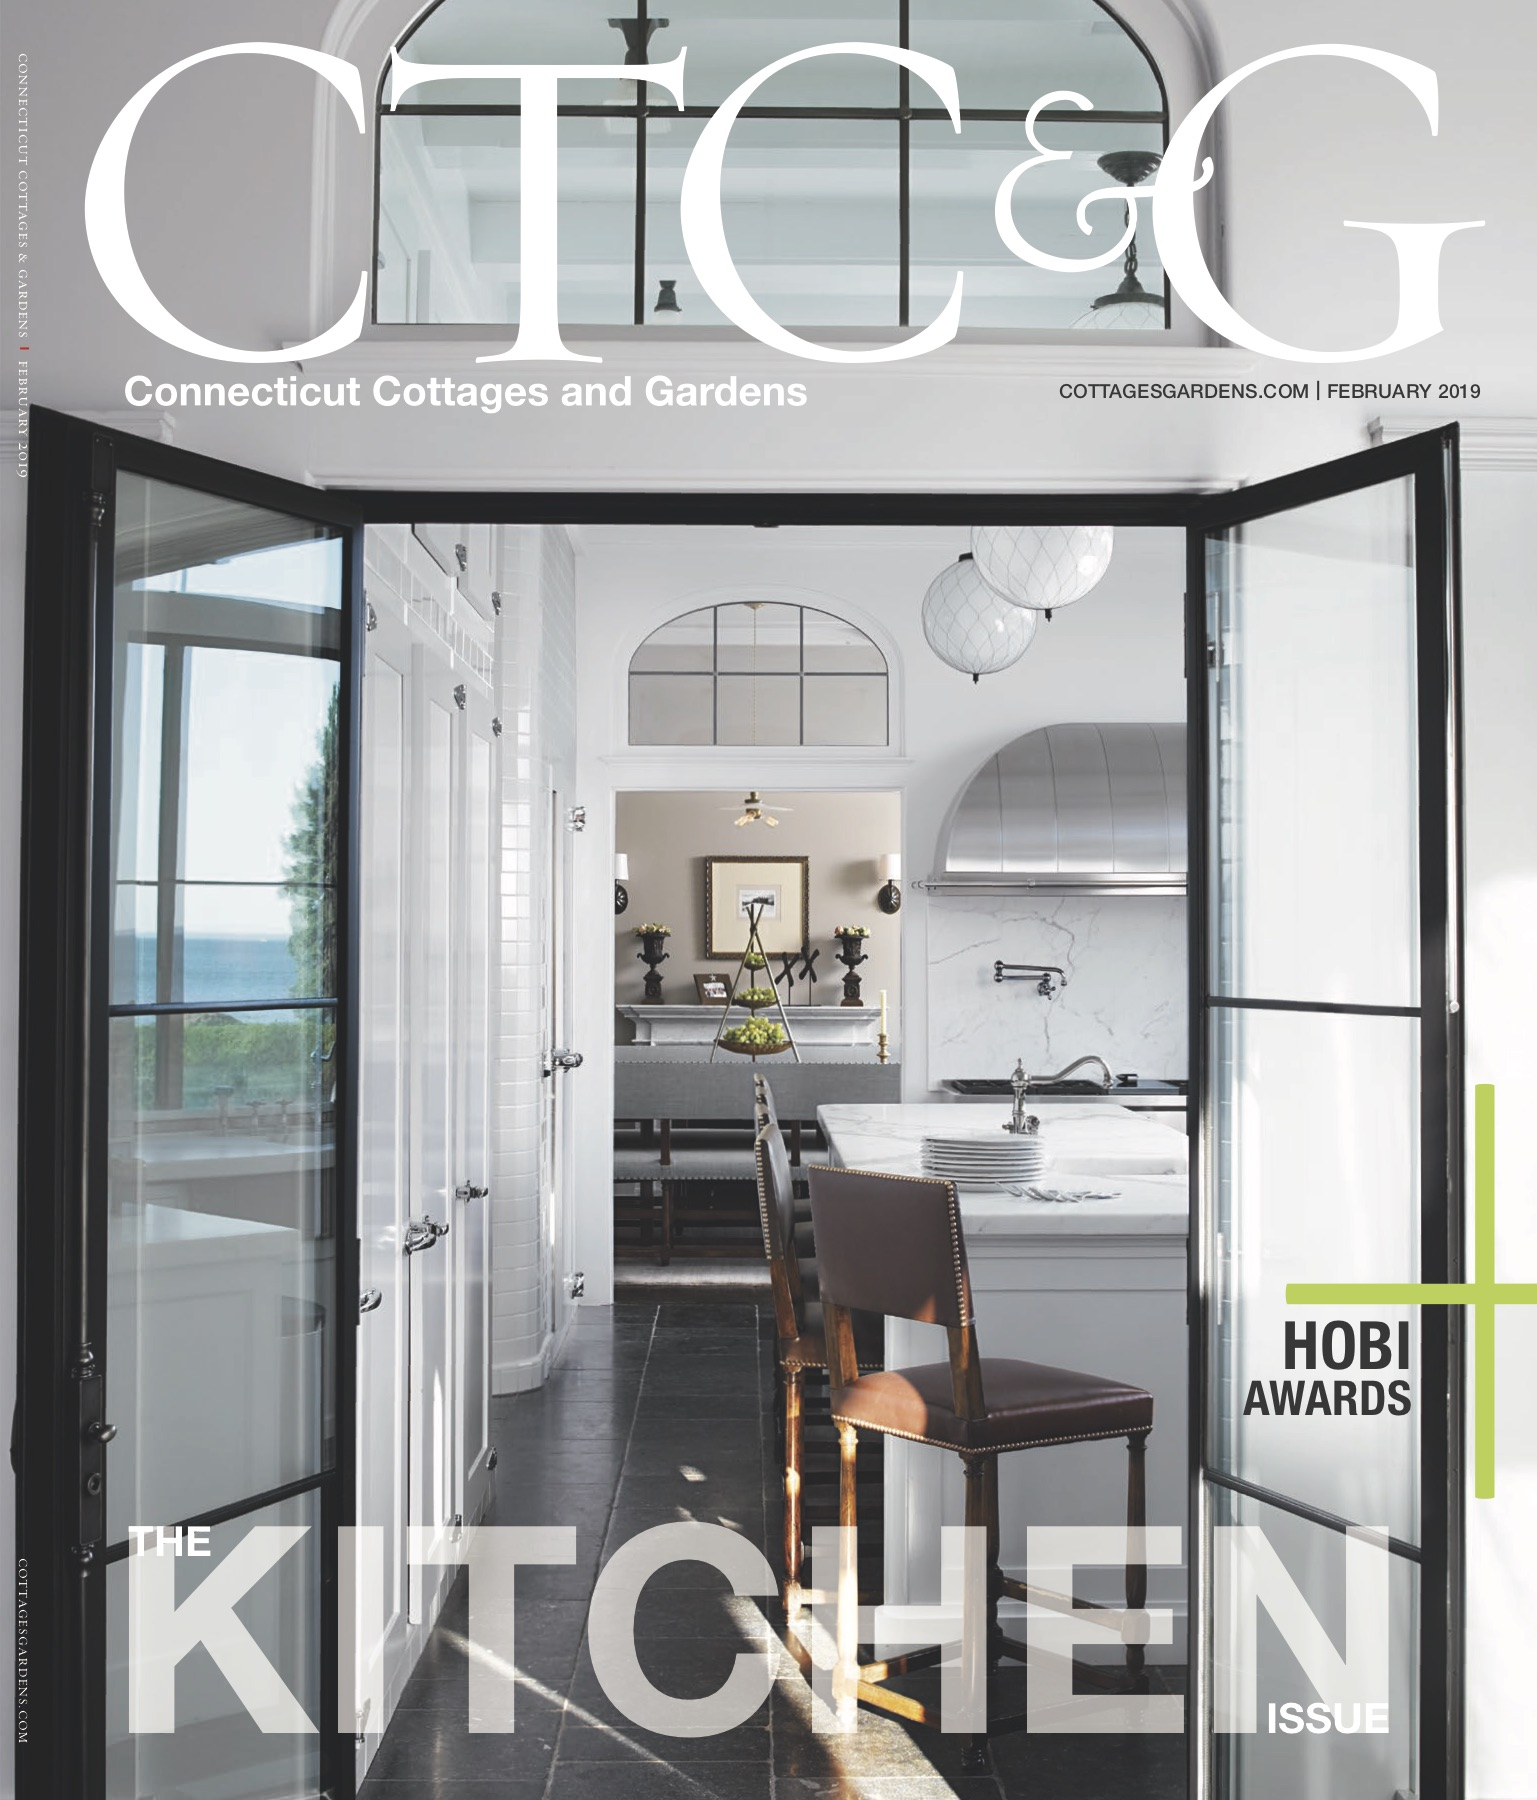 Connecticut Cottages & Gardens February 2019